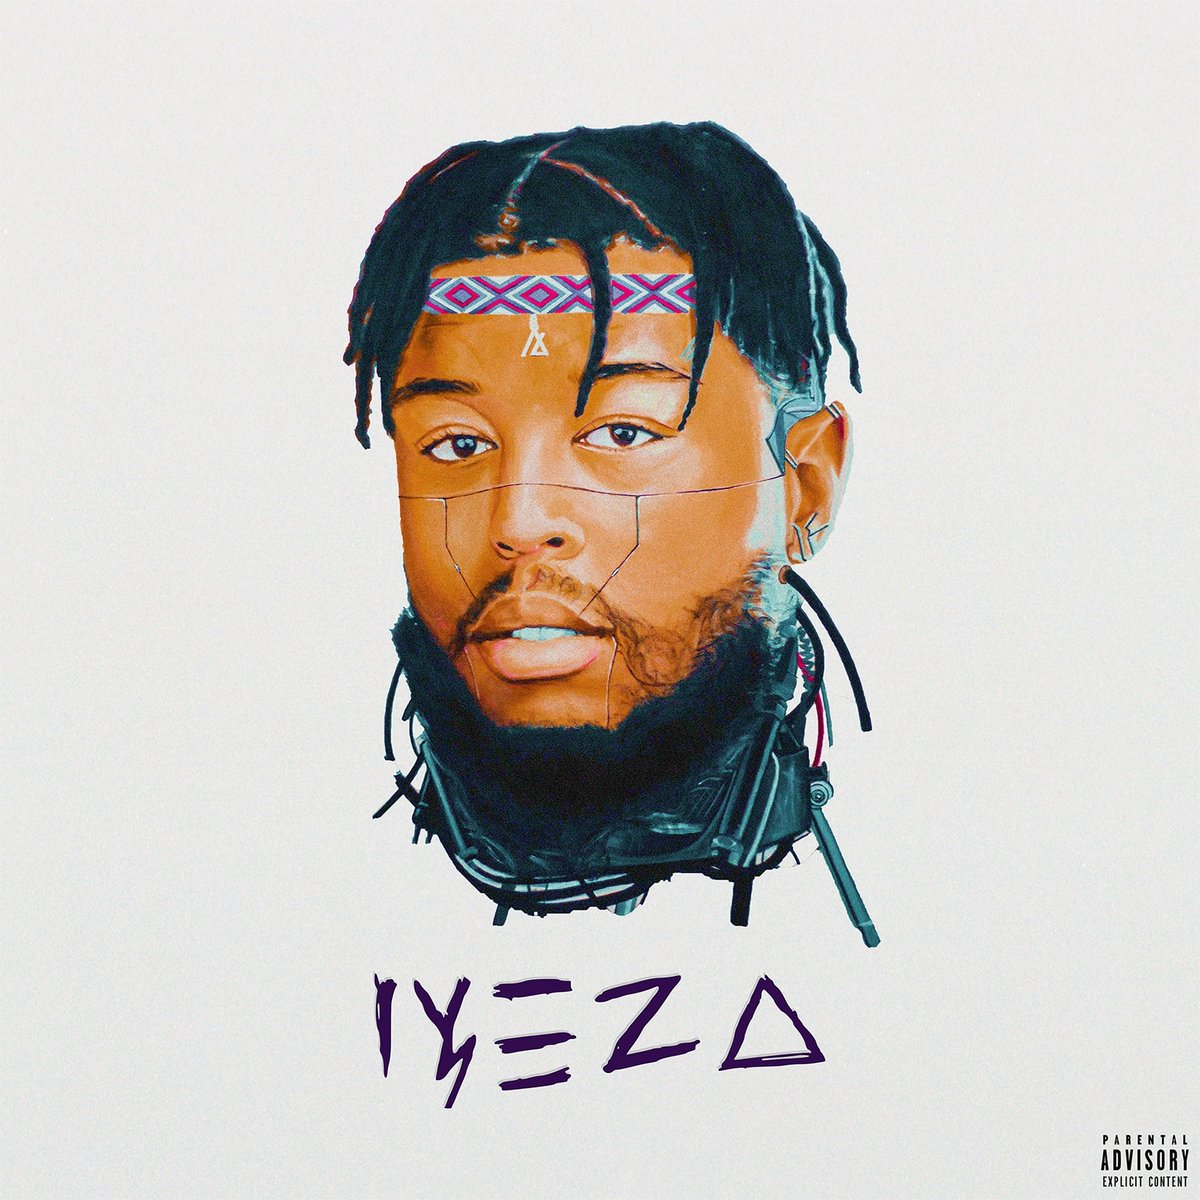 DOWNLOAD Anatii Iyeza EP